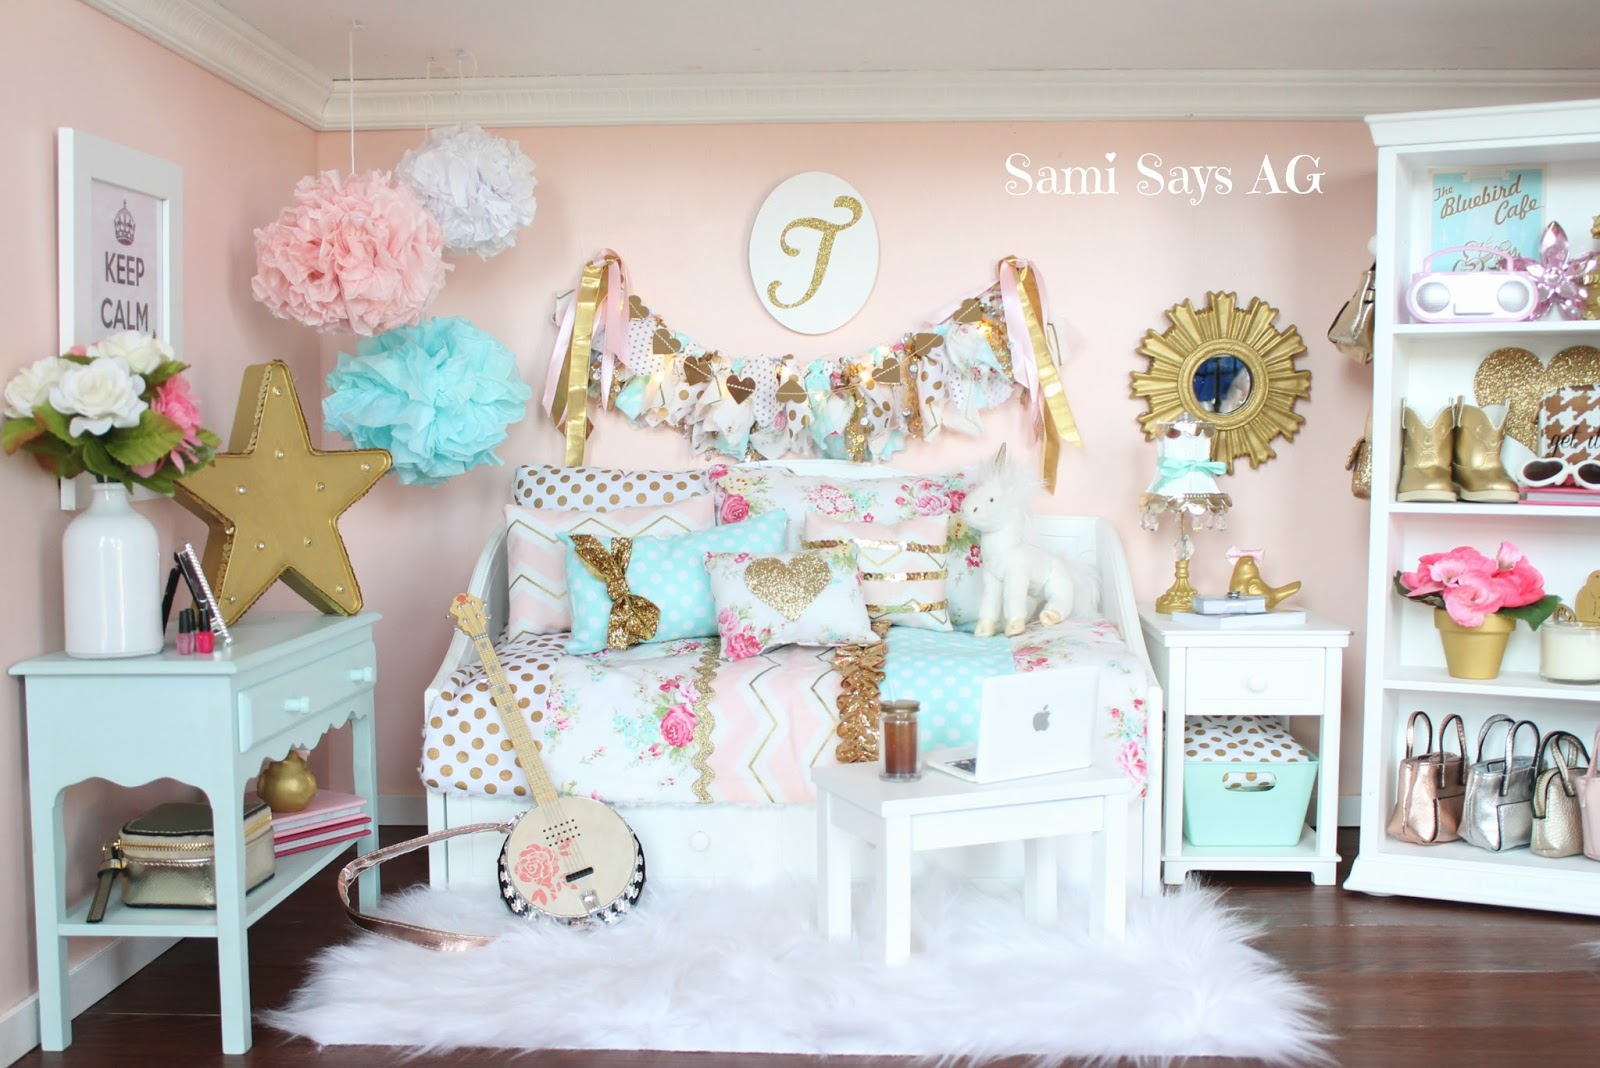 Sami Says AG: American Girl Tenney Grant\'s Doll House Room